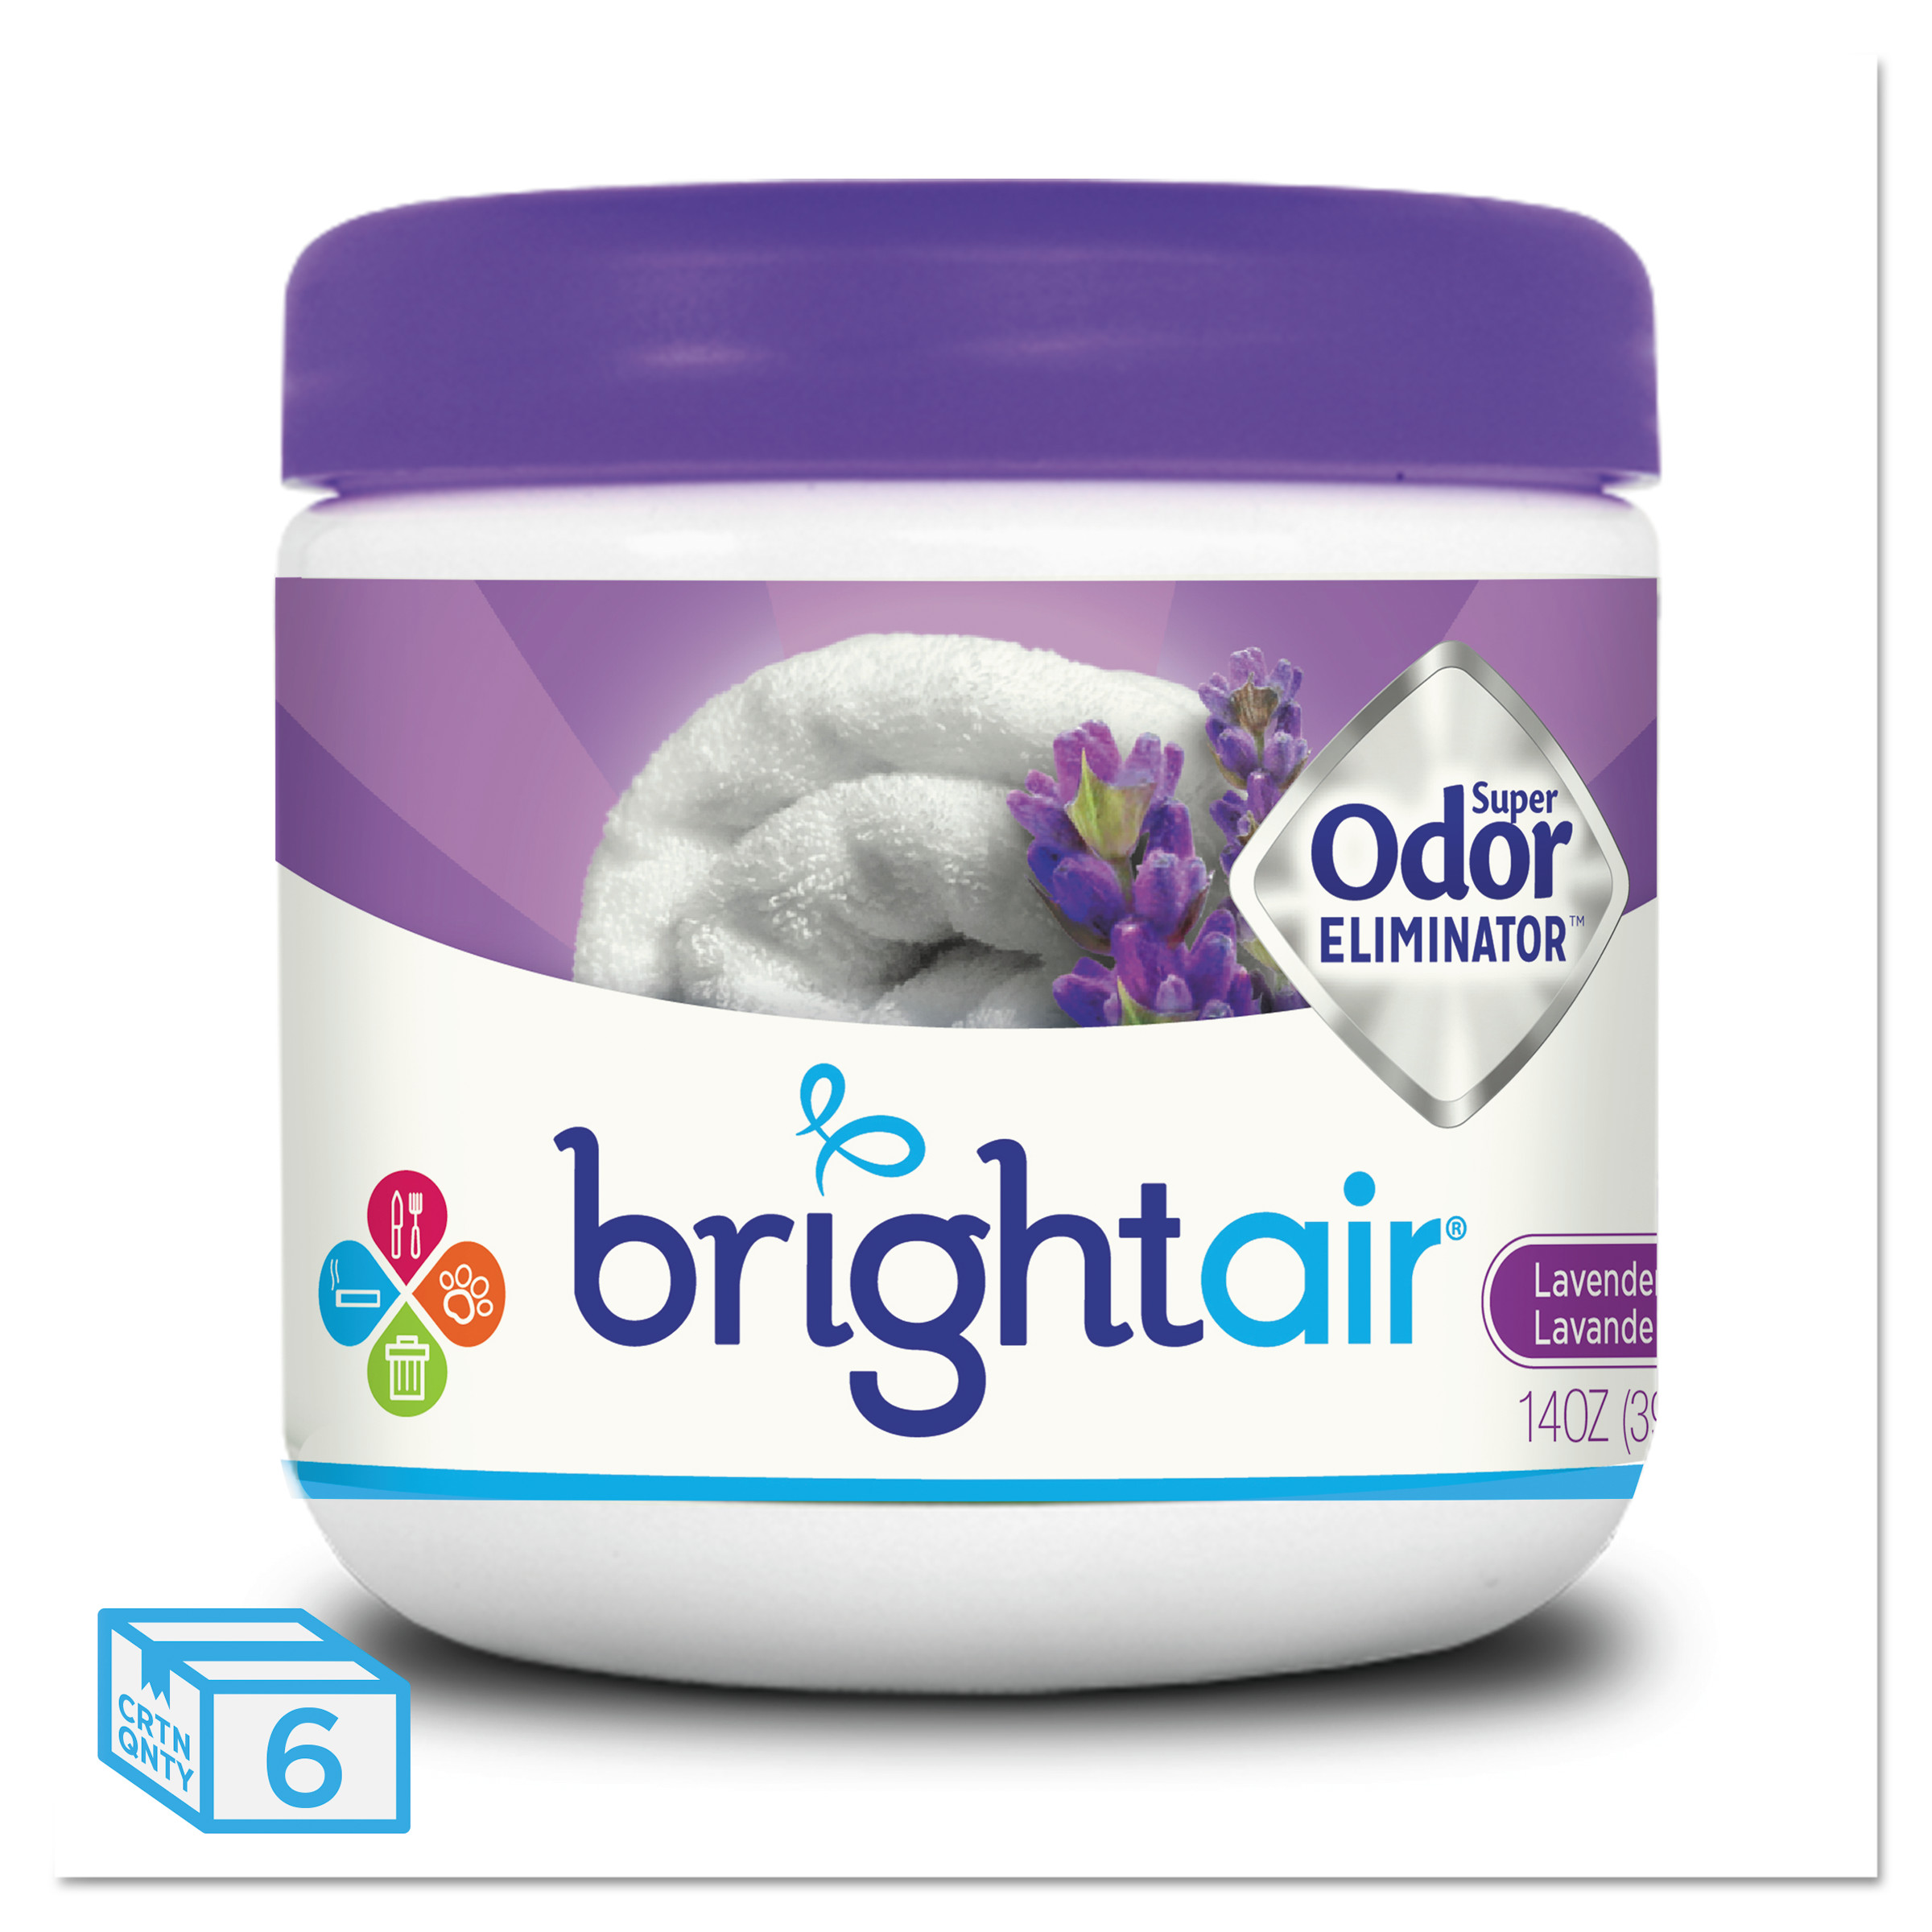 BRIGHT Air Super Odor Eliminator, Lavender and Fresh Linen, Purple, 14oz